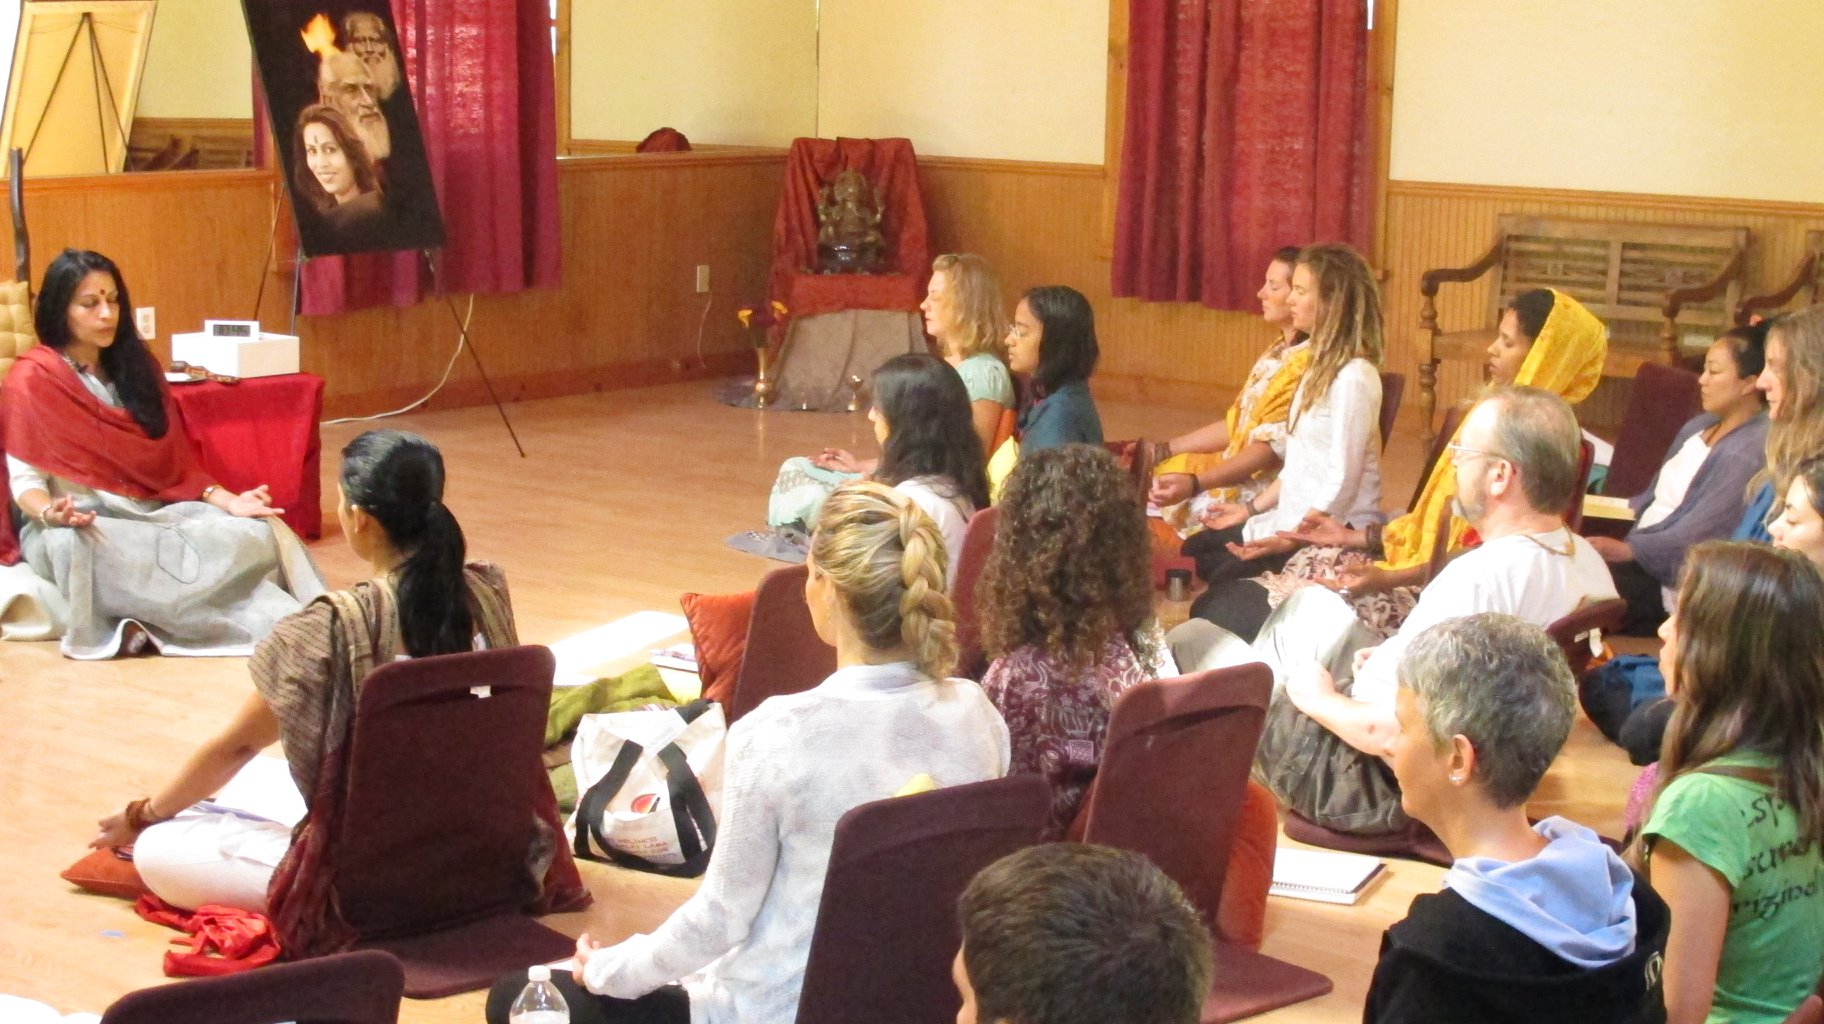 acharya shunya = meditation - speaking